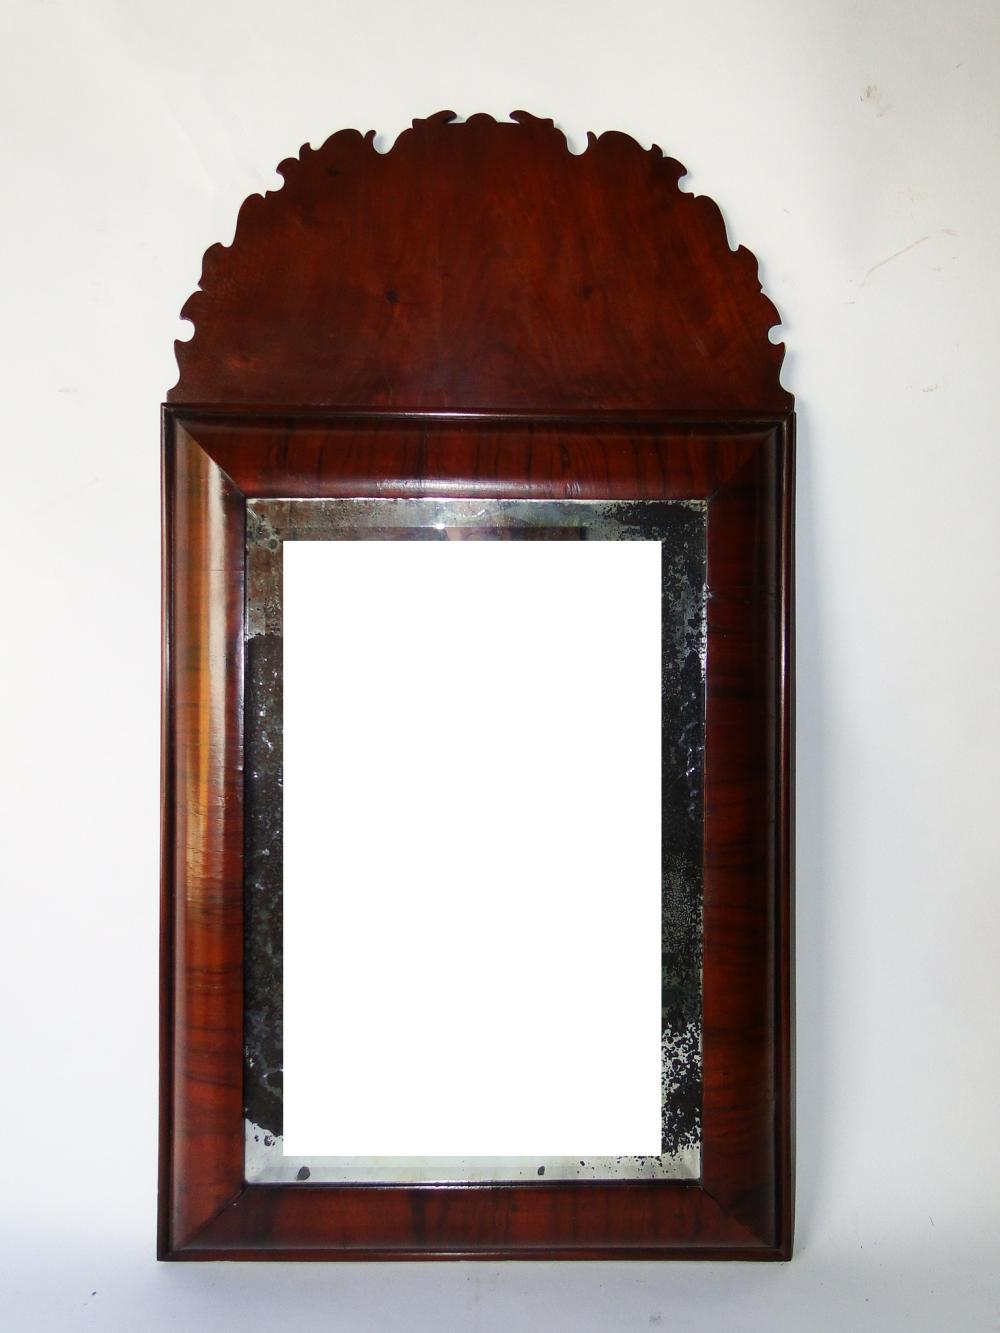 RARE C. 1680 WILLIAM AND MARY MIRROR